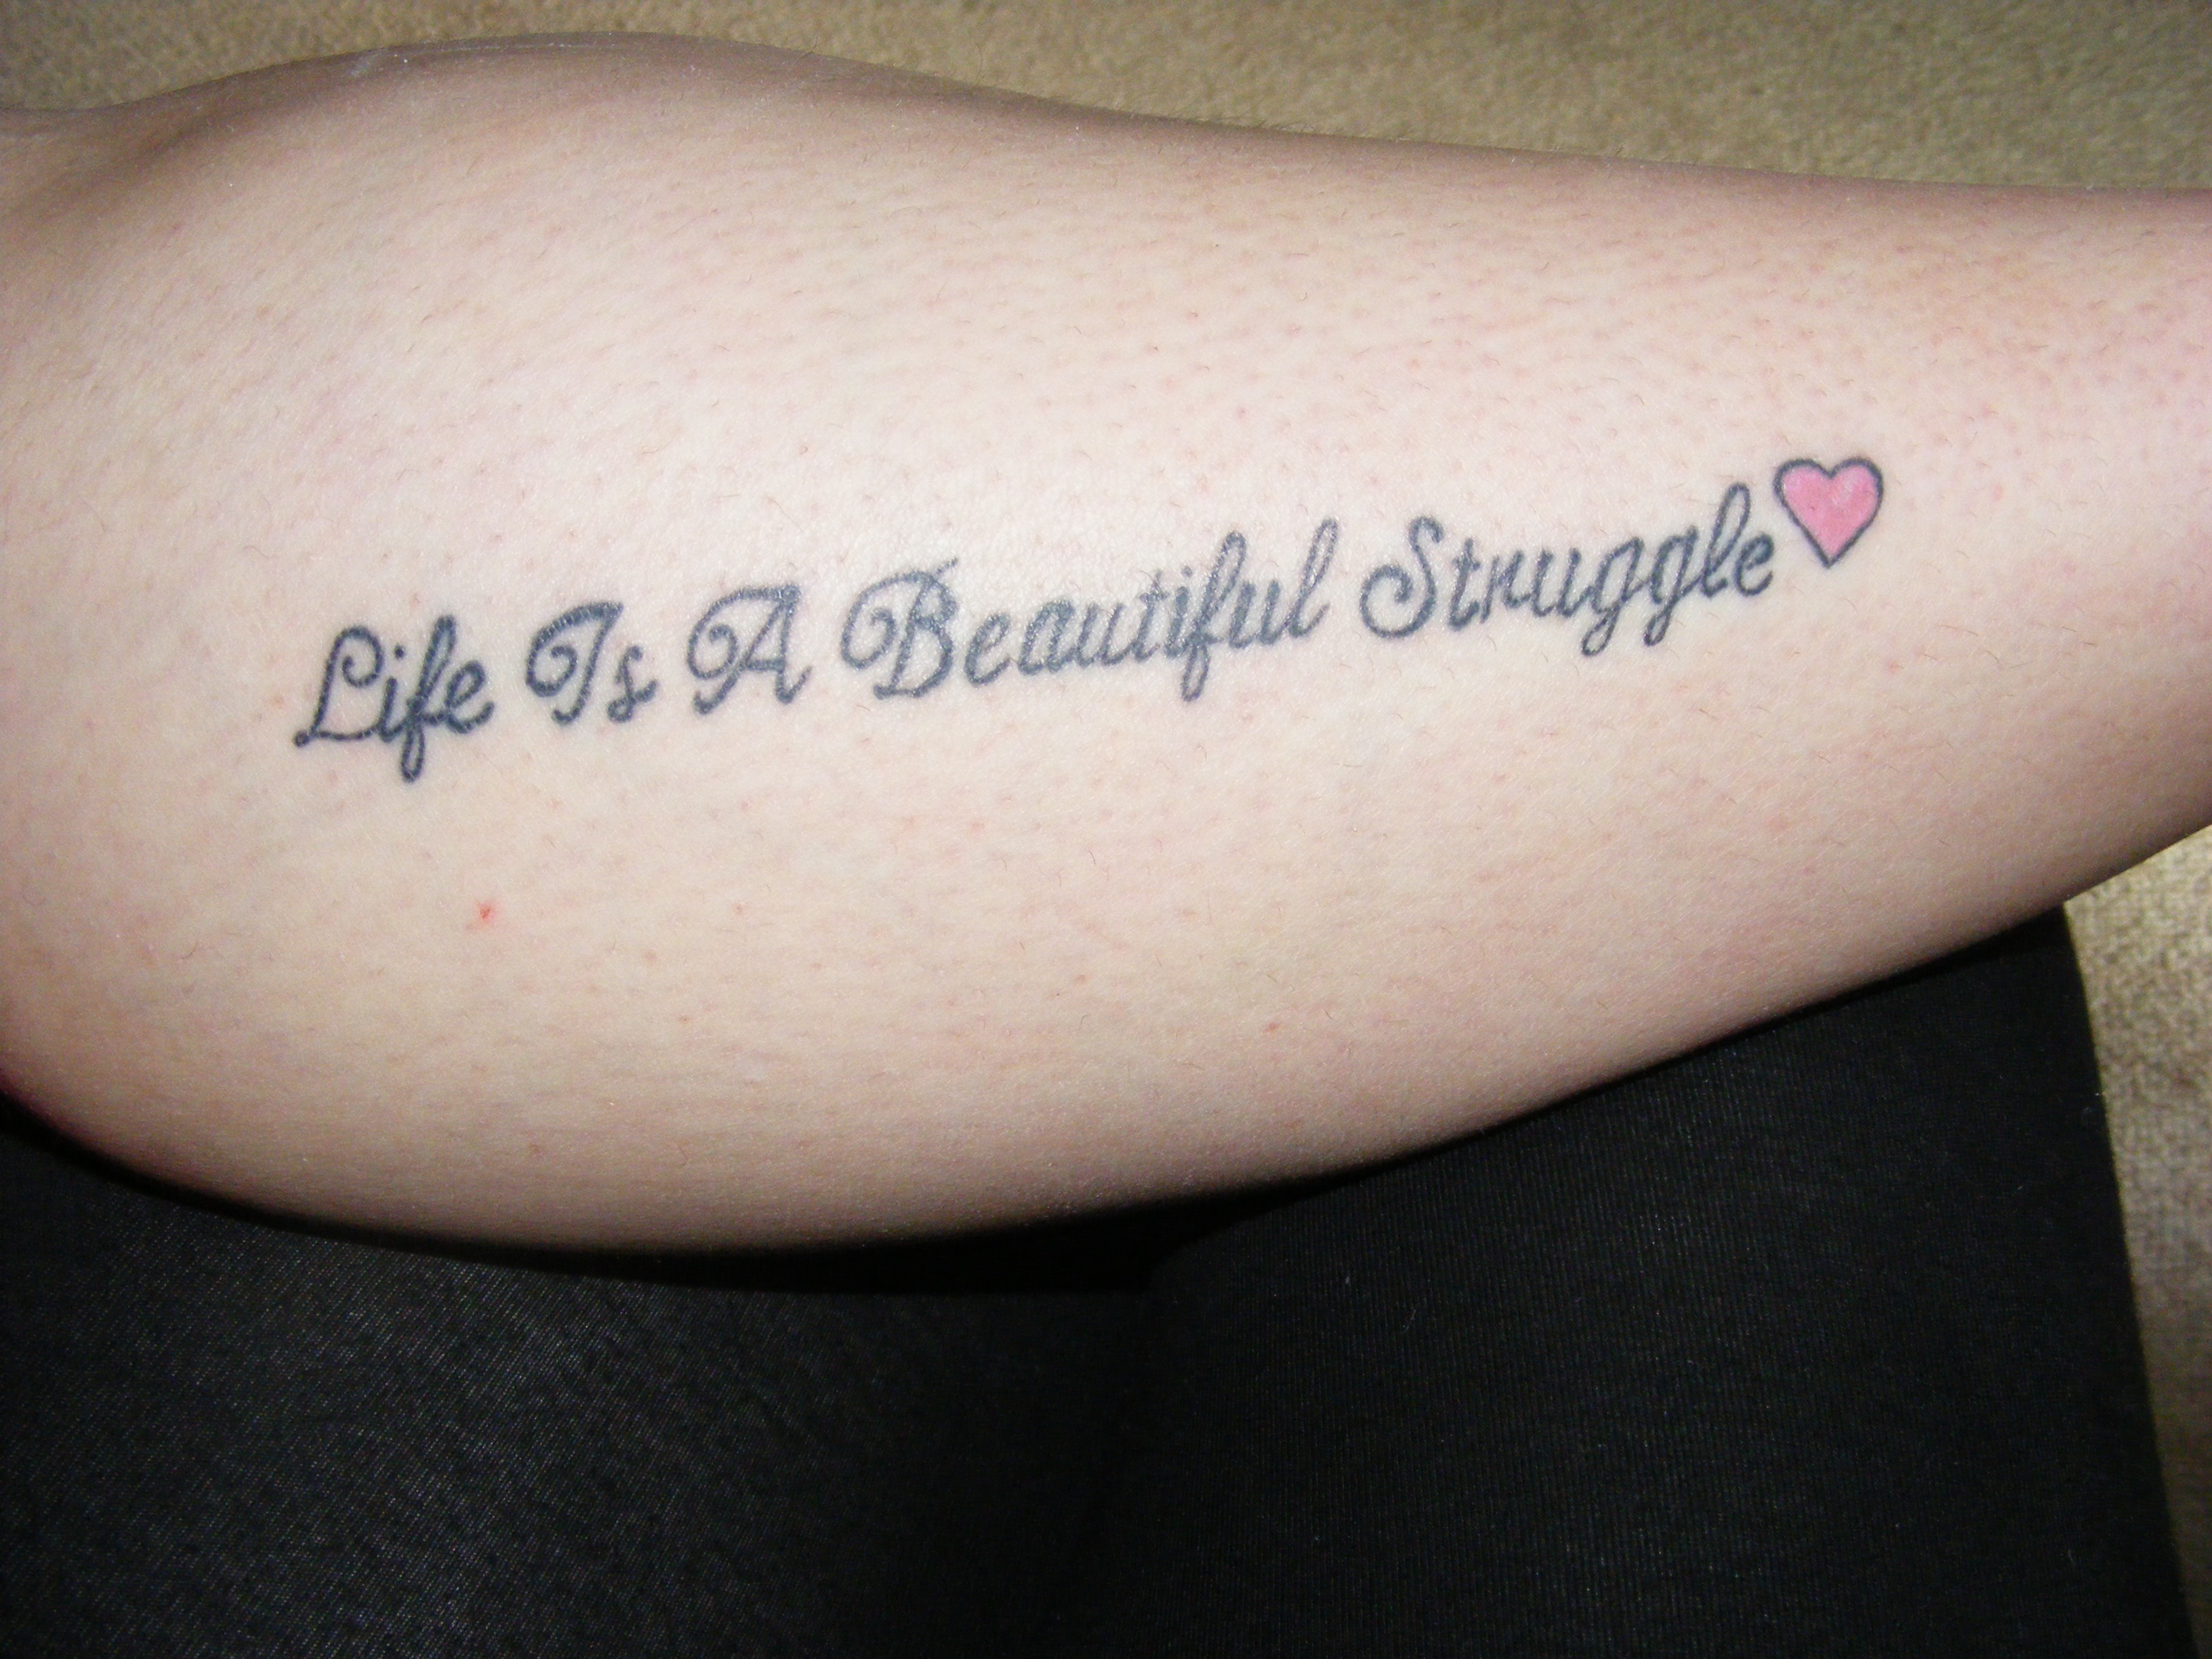 The beatles tattoo quotes